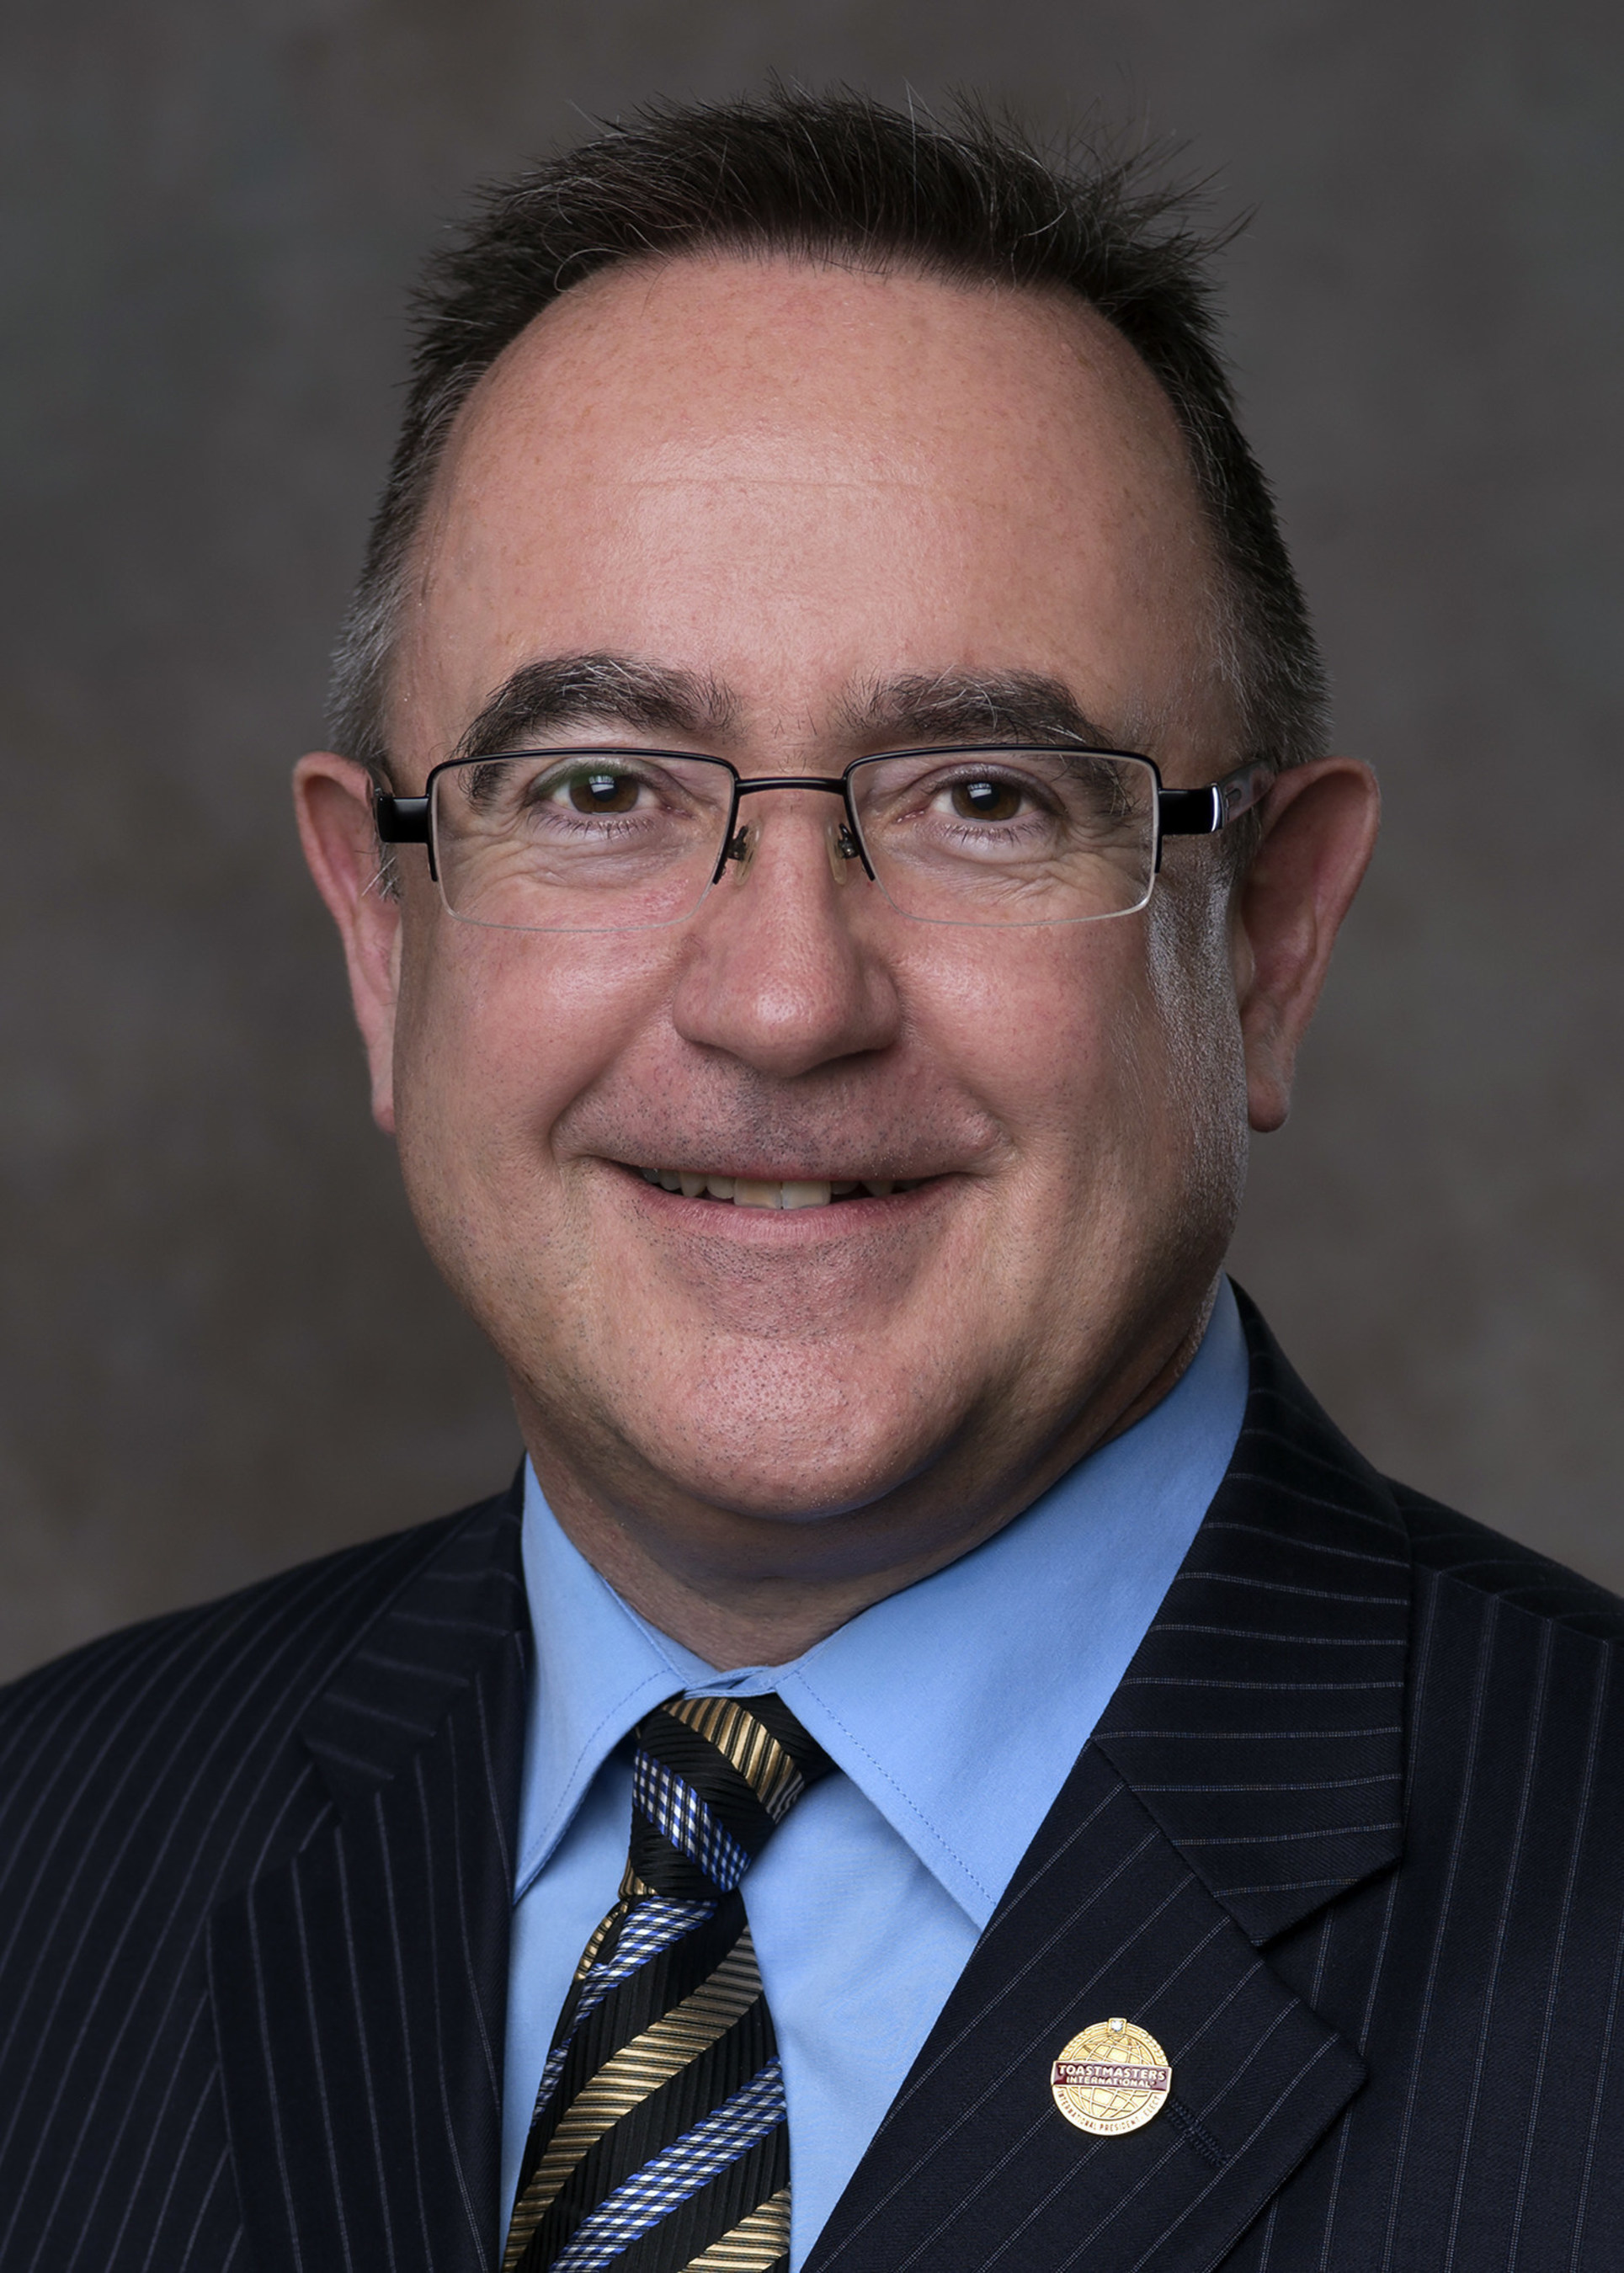 Jim Kokocki